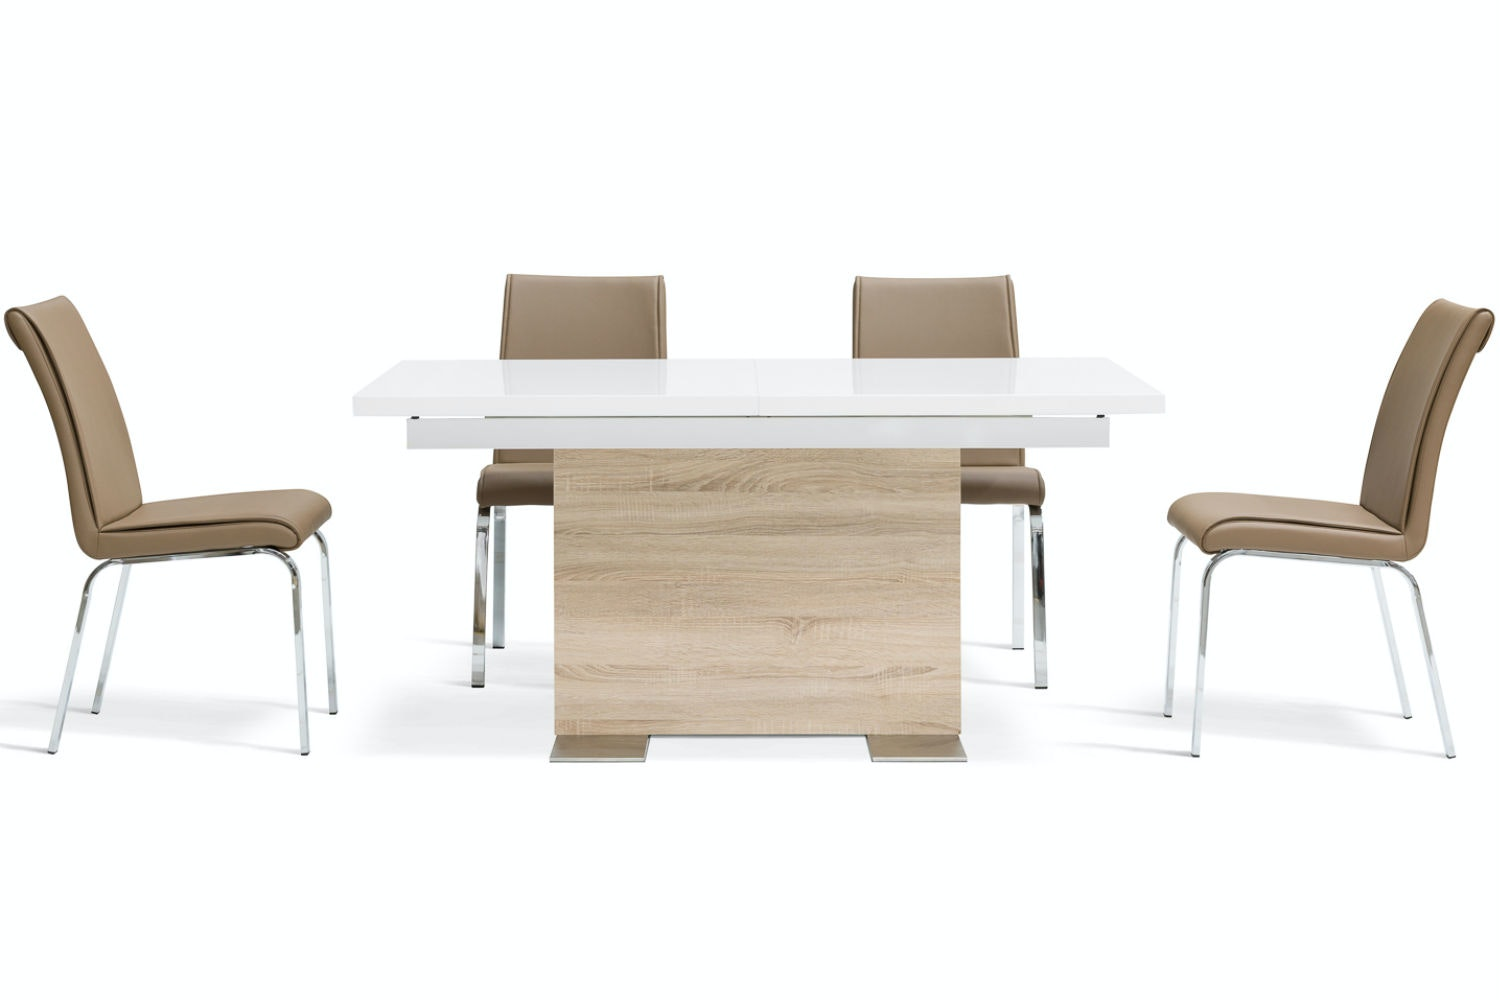 Lennox 5 Piece Dining Set | Leonora Dining Chairs Cappuccino